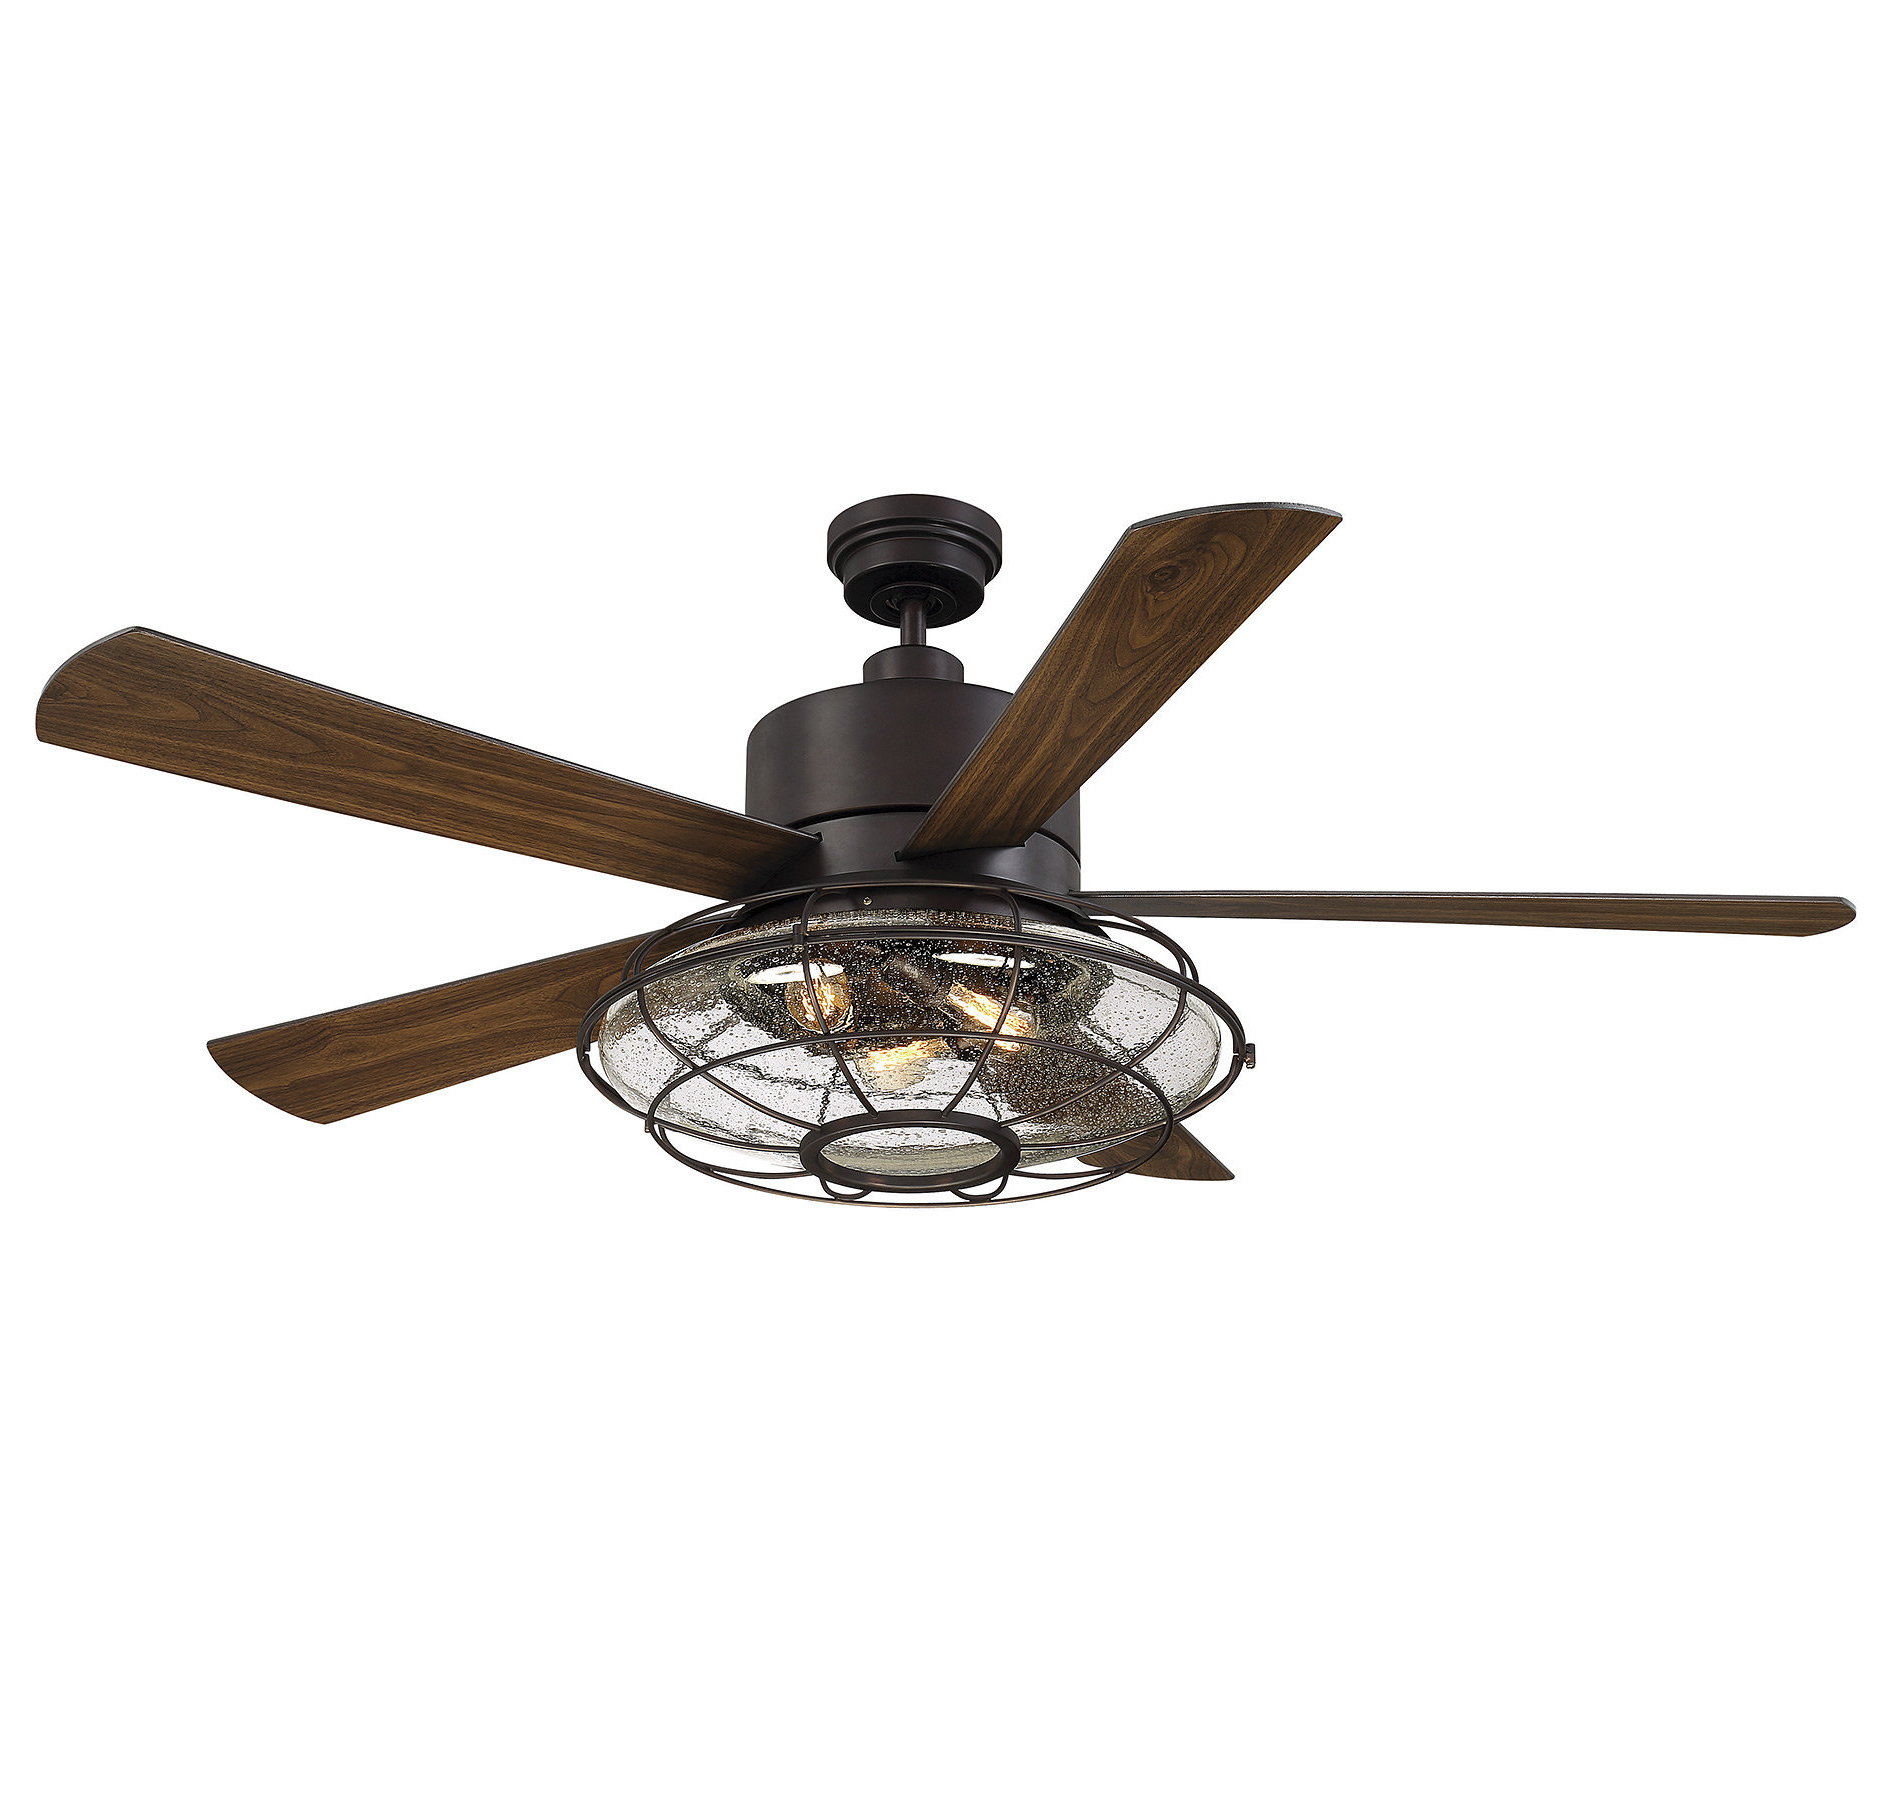 """2020 Ravenna 5 Blade Ceiling Fans Throughout 56"""" Roberts 5 Blade Ceiling Fan With Remote Control, Light Kit Included (View 2 of 20)"""